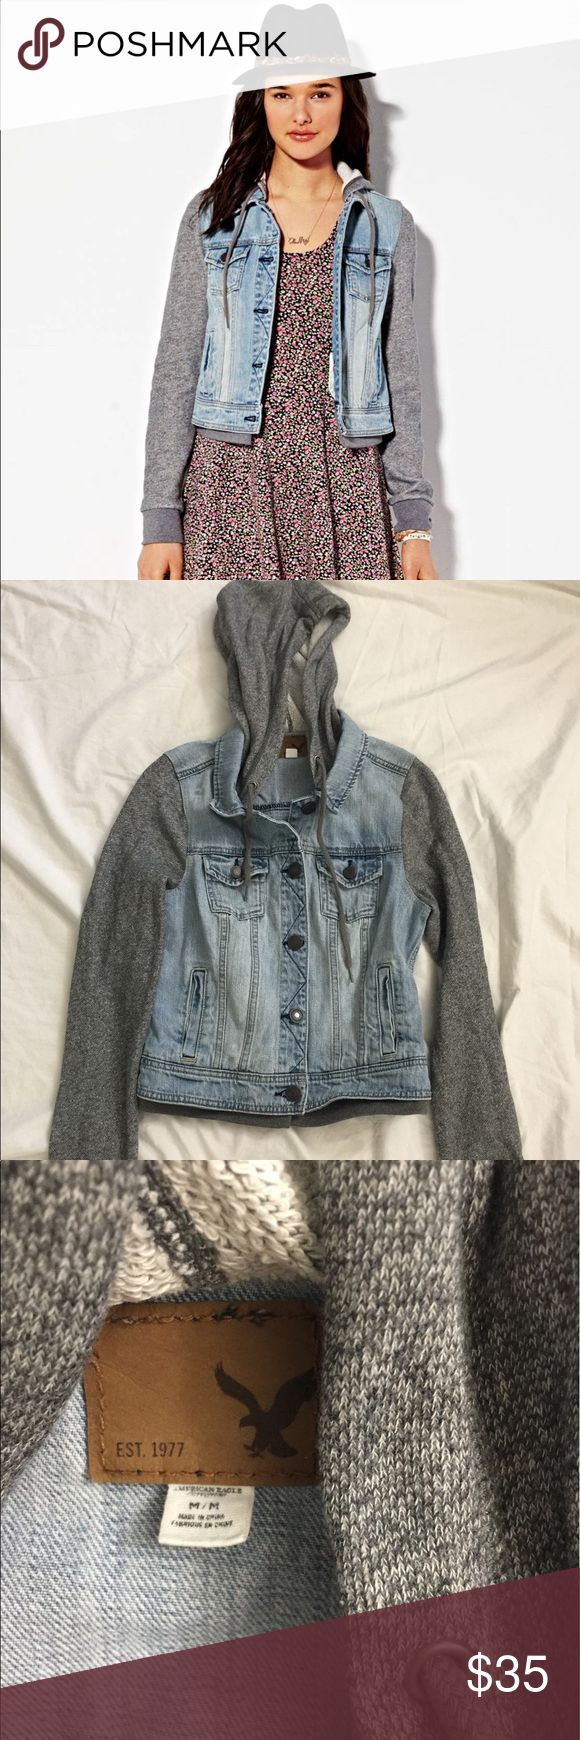 American Eagle Jean Jacket Hoodie Jean jacket with soft hoodie and sleeves in excellent condition; worn only once American Eagle Outfitters Jackets & Coats Jean Jackets